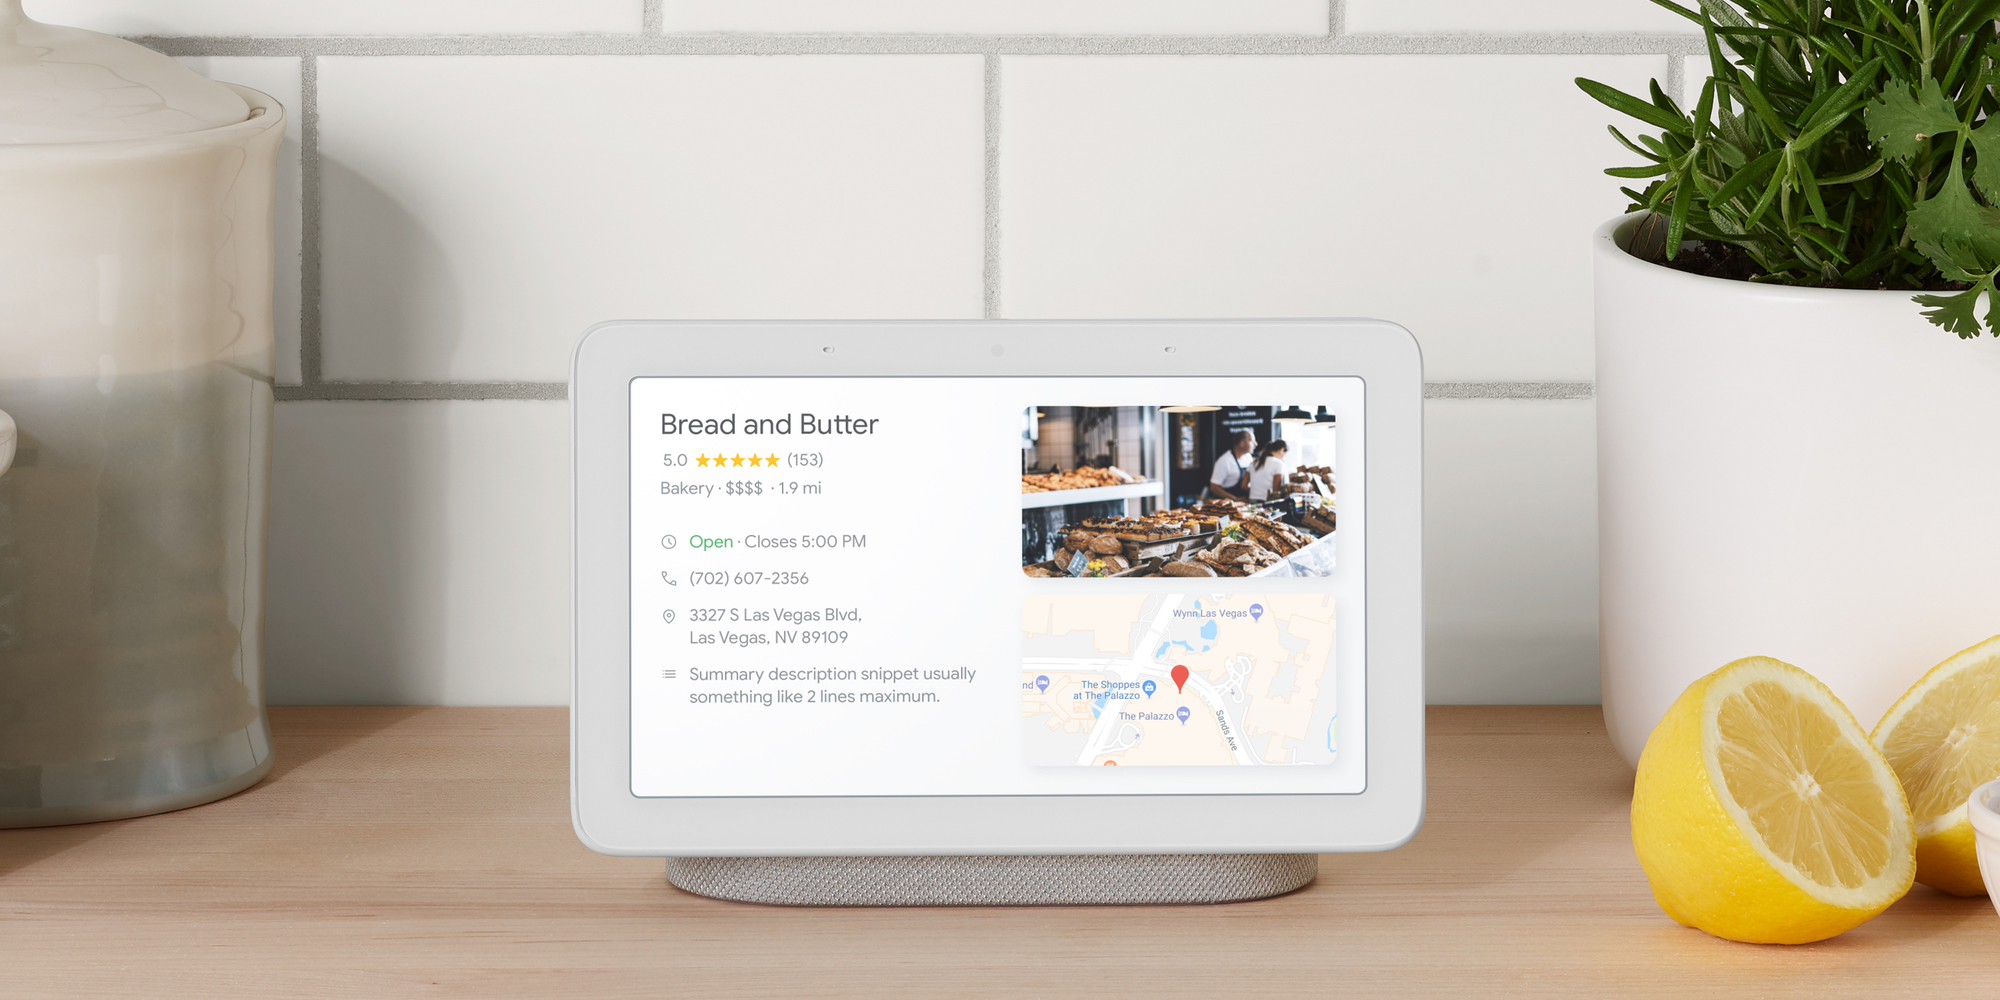 Google Home Hub returns to $99 shipped (Reg. $129)